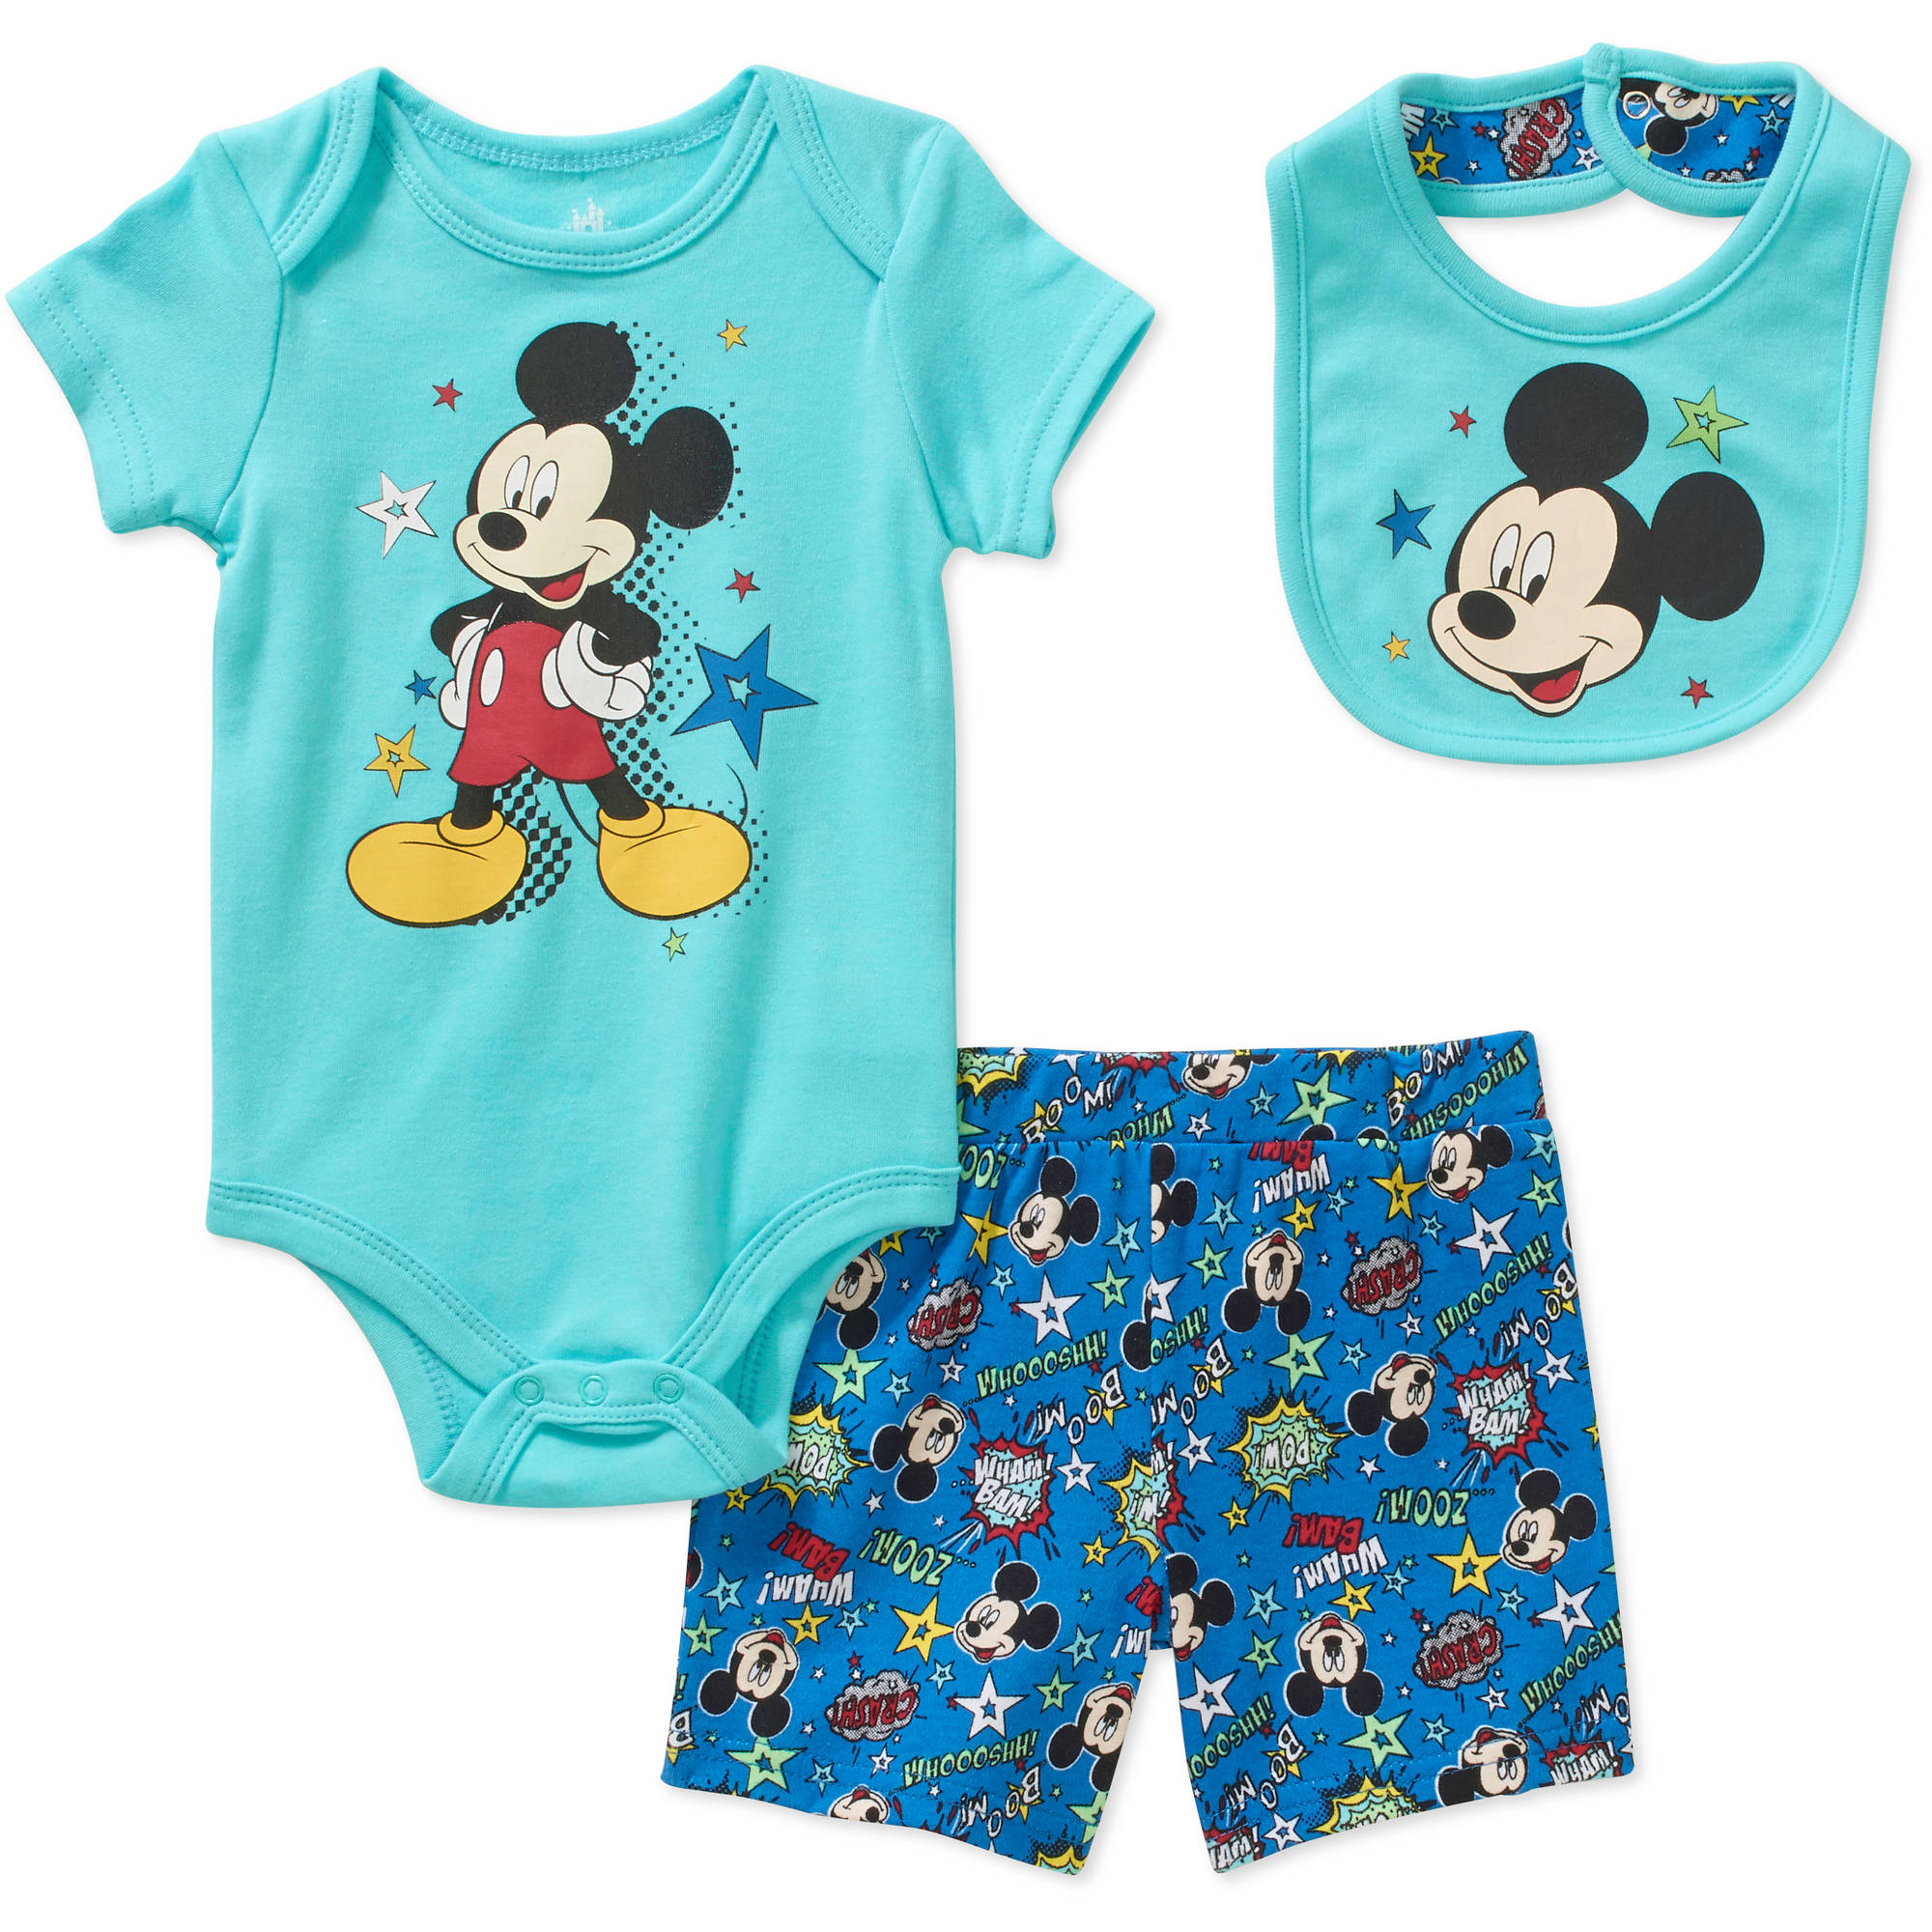 Mickey Mouse Newborn Baby Boys' Bodysuit, Diaper Cover and Bib 3-Piece Outfit Set